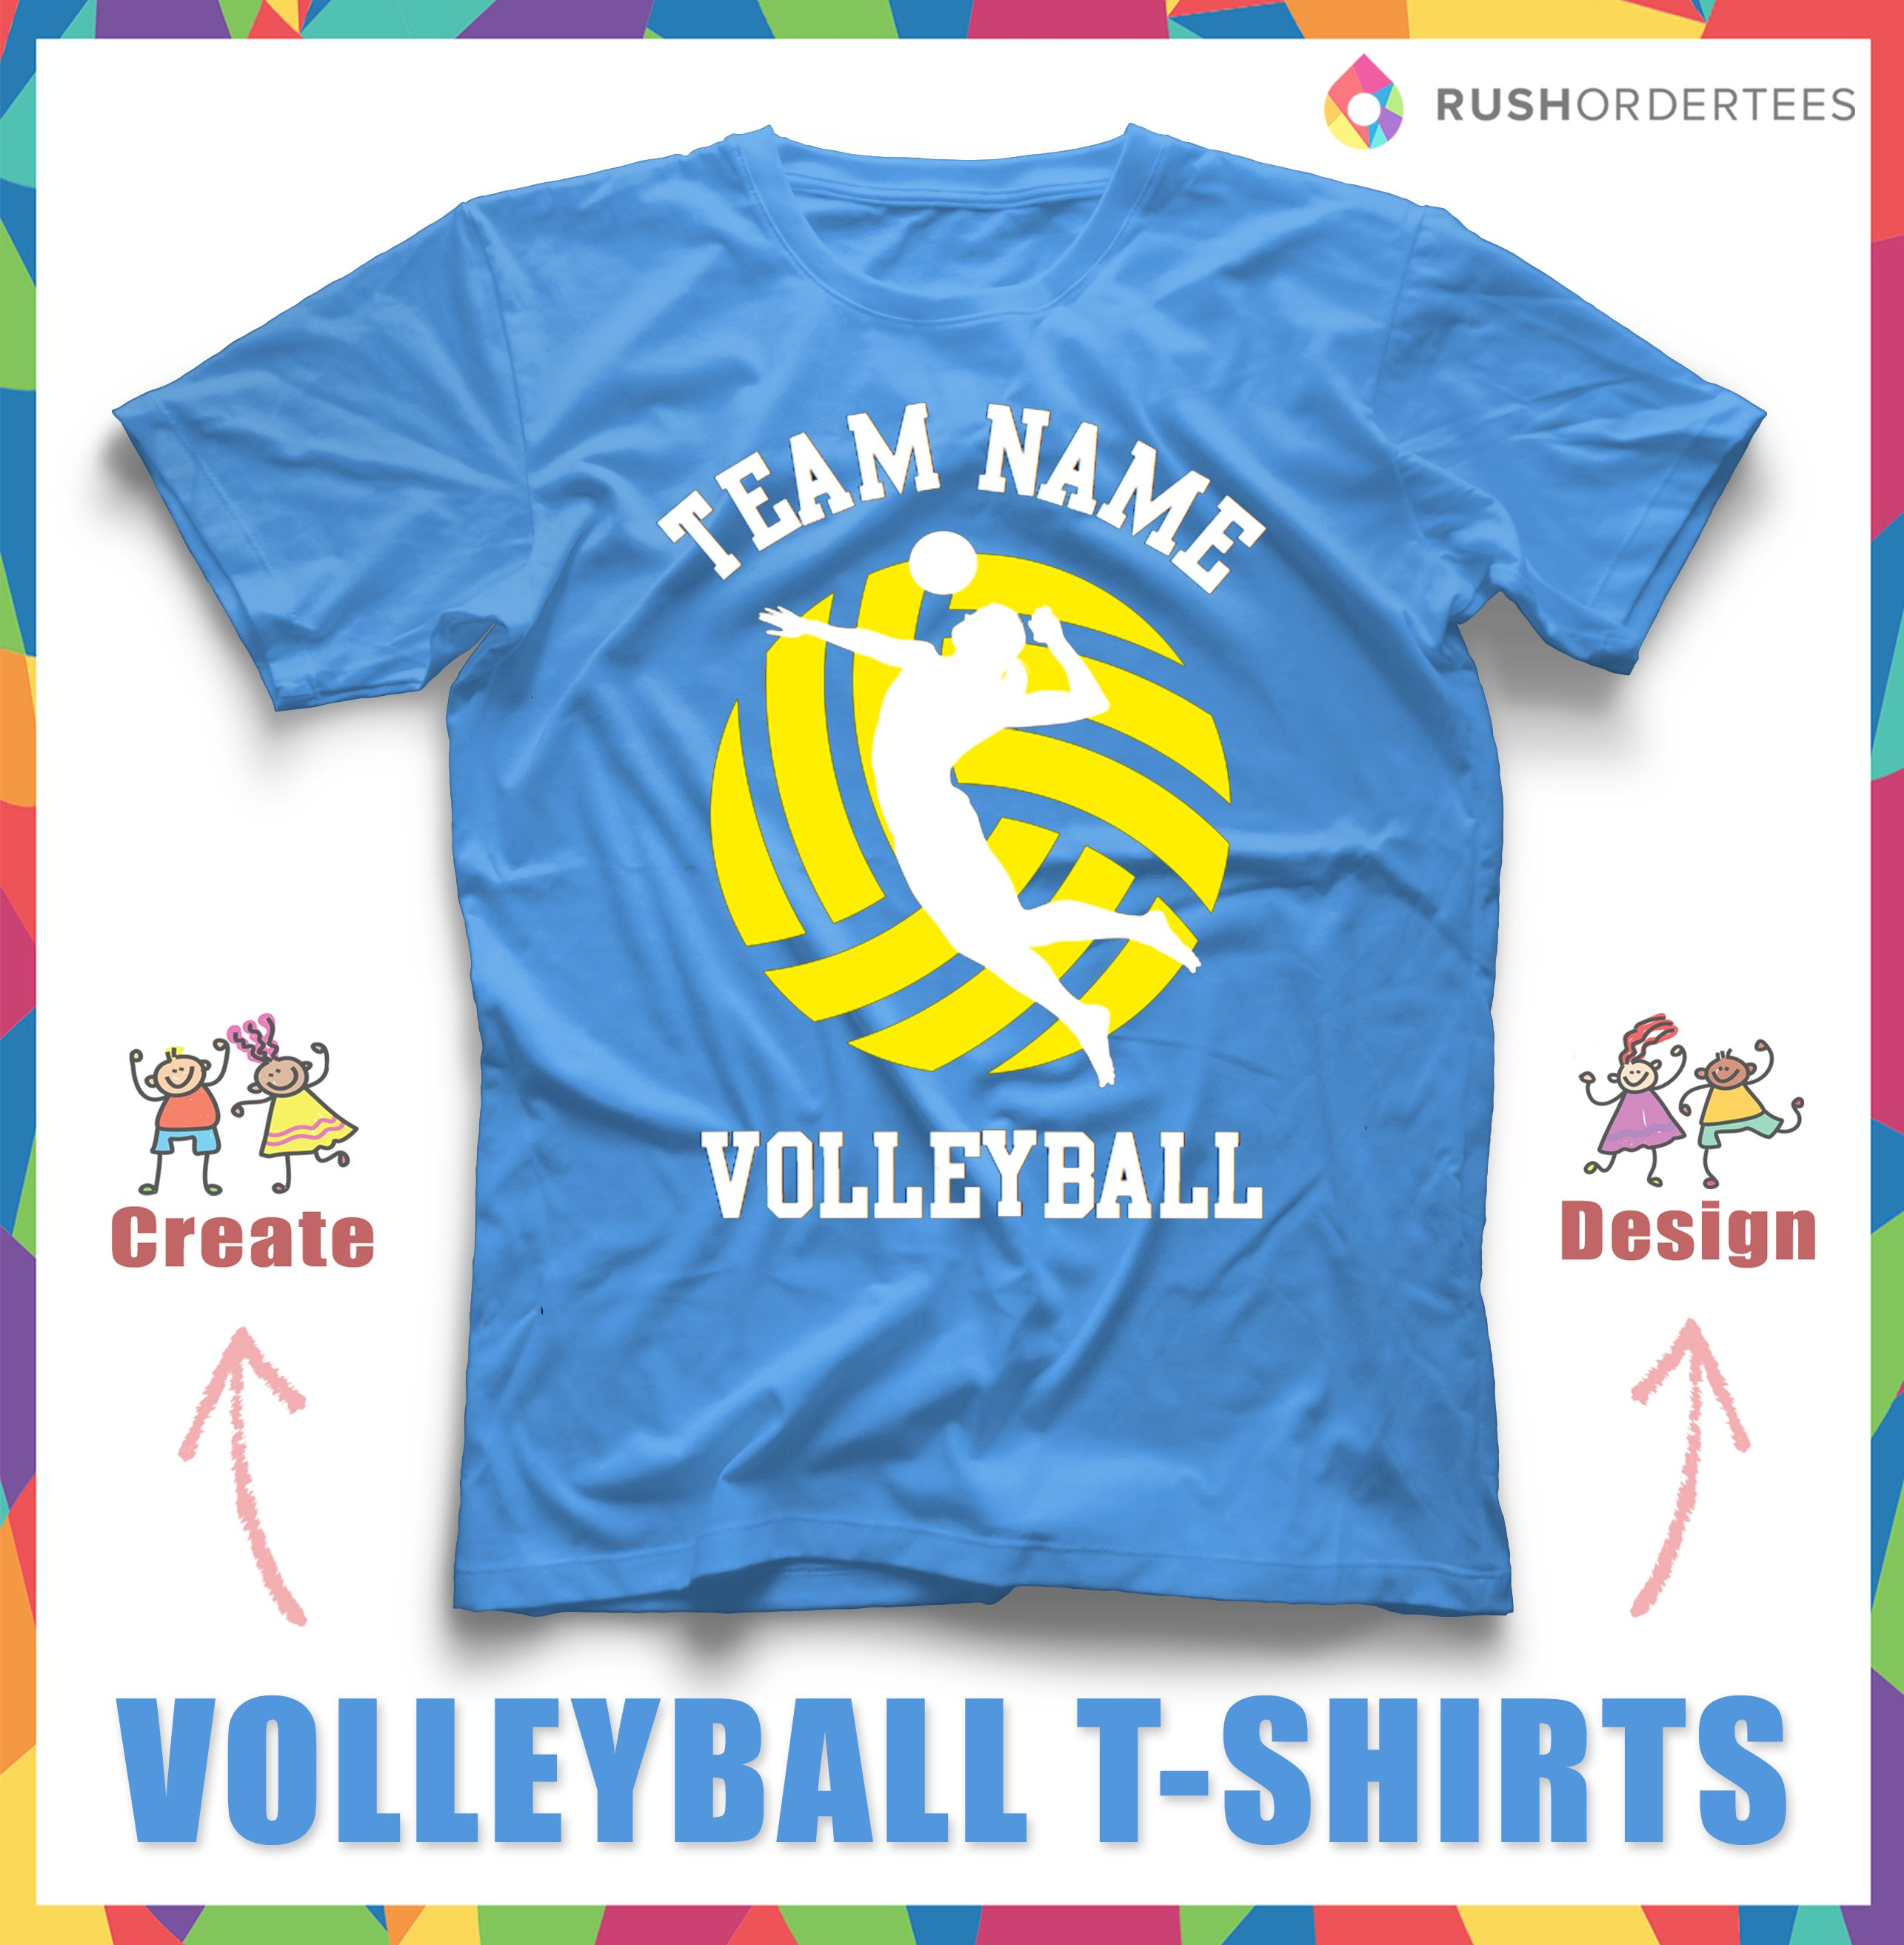 Volleyball Custom T Shirt Design Idea Edit This Custom T Shirt With Your Volleyball Team Volleyball T Shirt Designs Volleyball Designs T Shirt Design Template